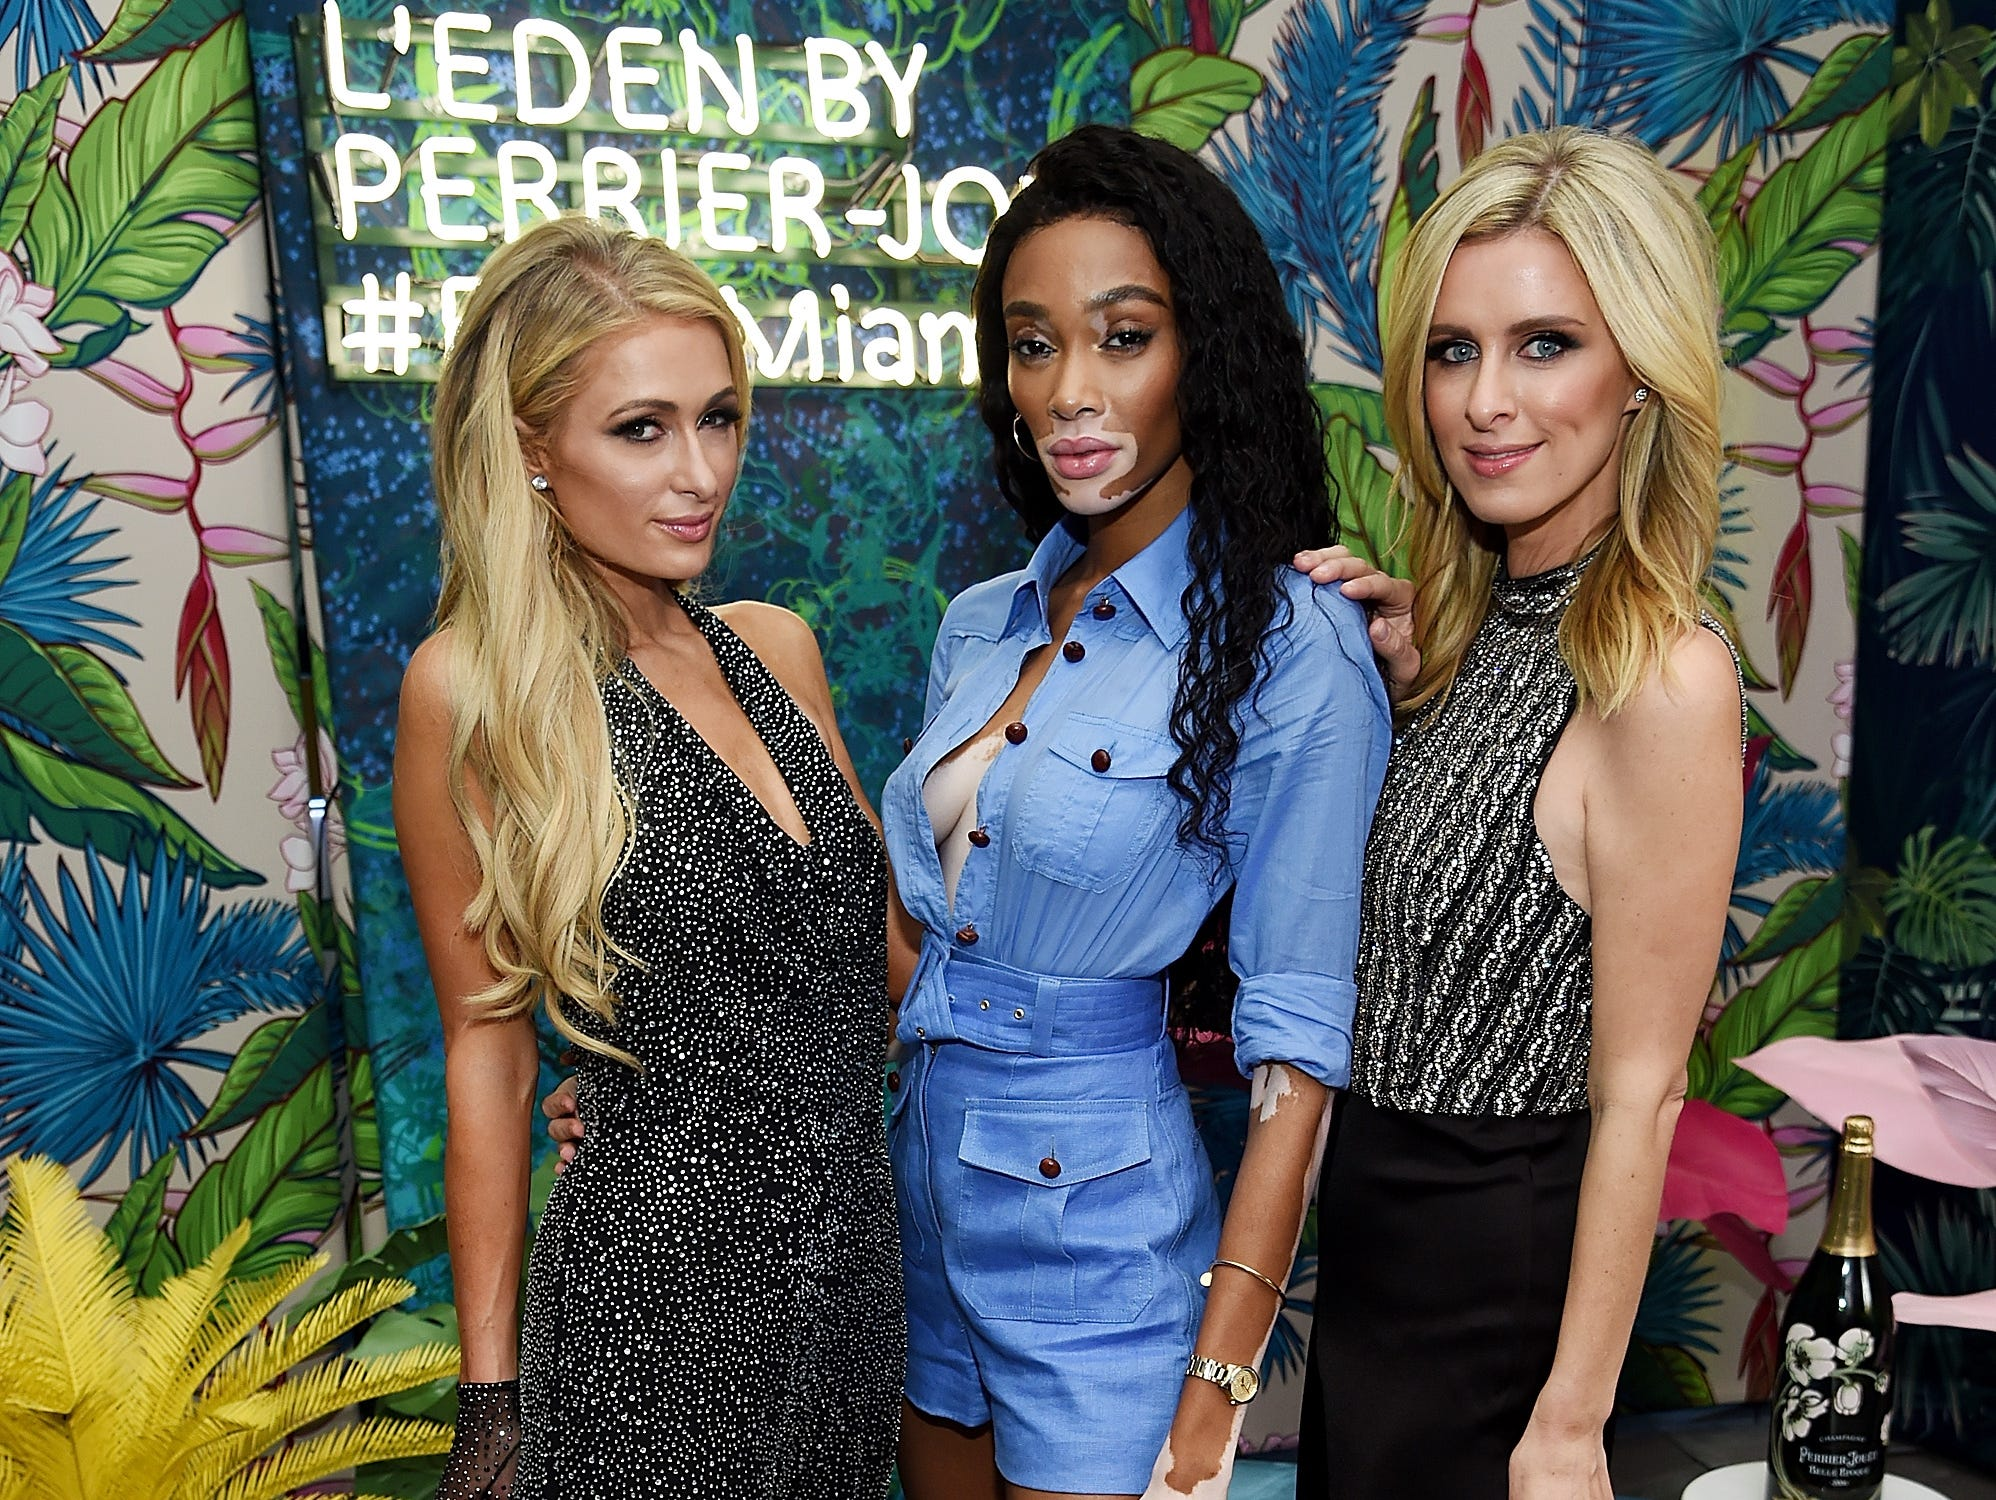 Paris Hilton, Winnie Harlow, and Nicky Hilton partied in an urban jungle for Perrier-Jouet on December 6, 2018 in Miami Beach, Florida.